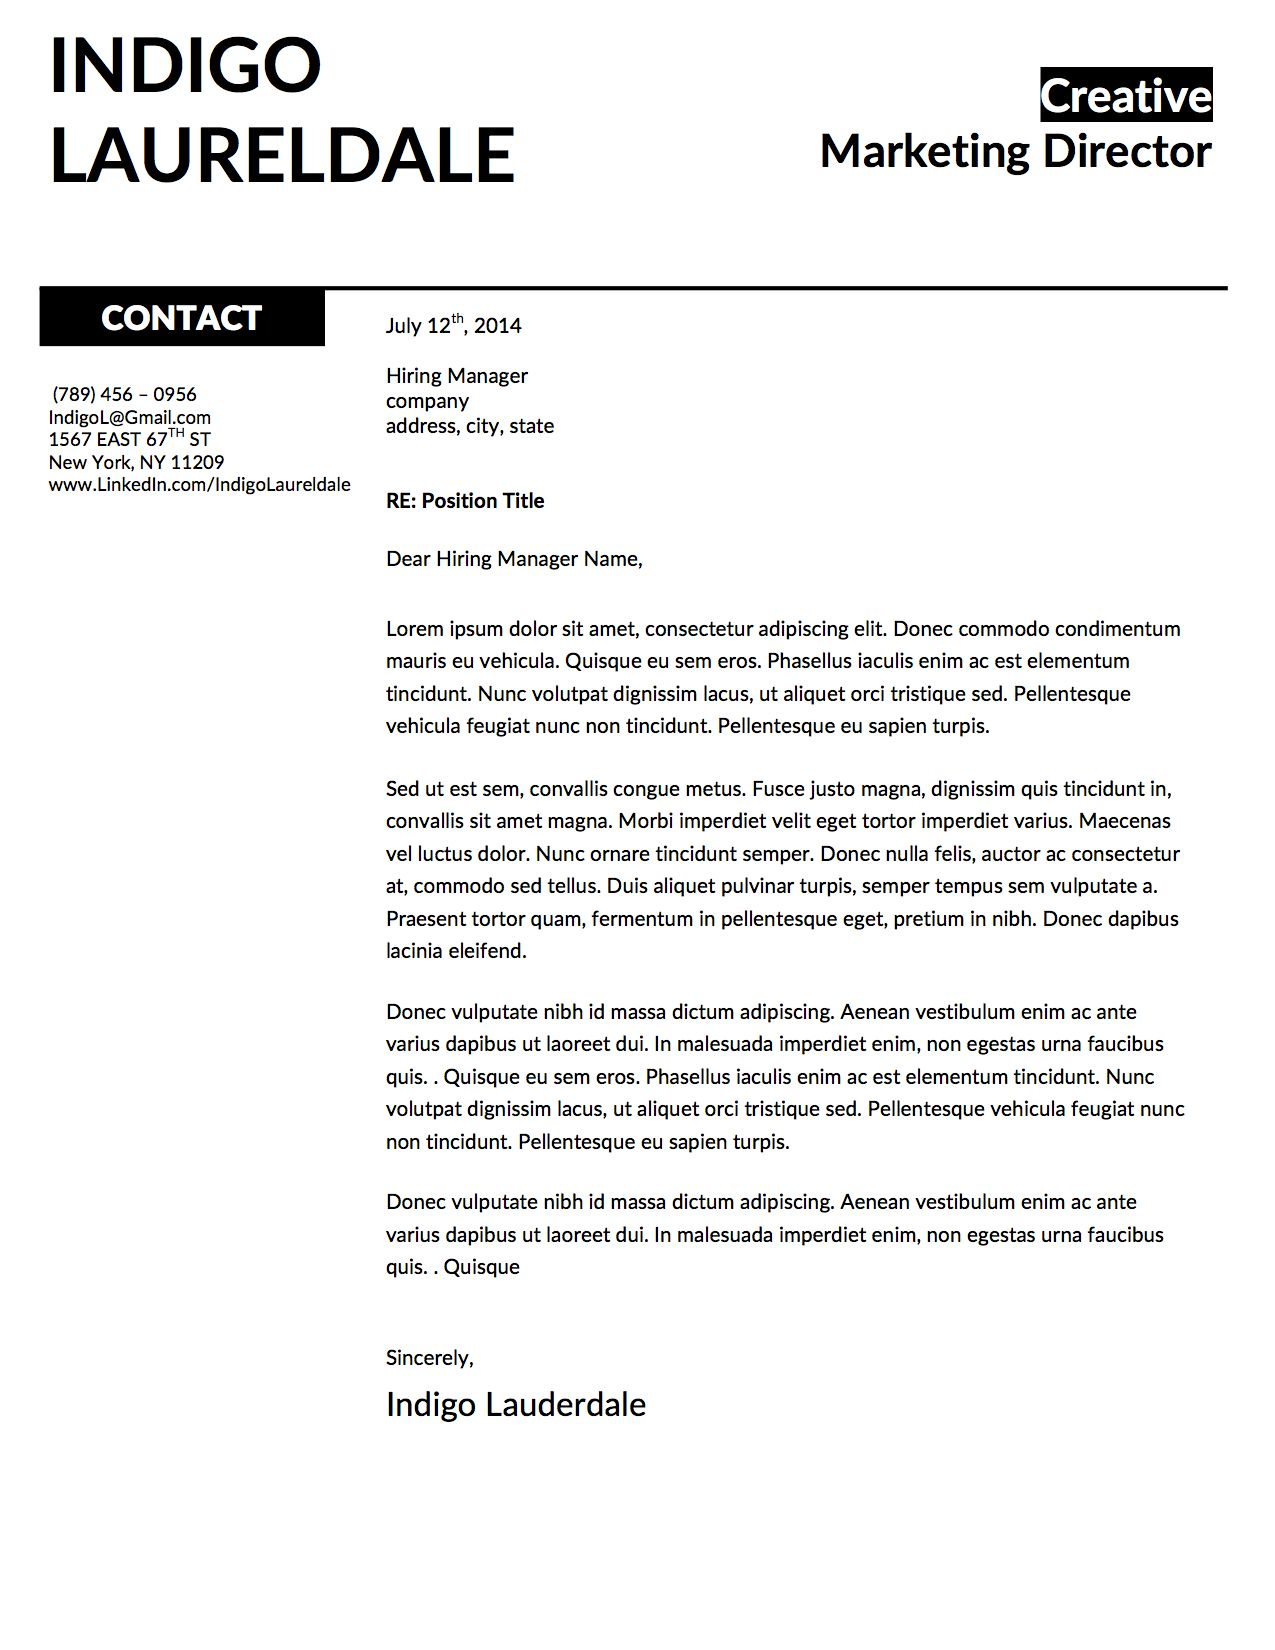 INDIGO Lauderdale Cover Letter Template for Microsoft Word | Indigo ...